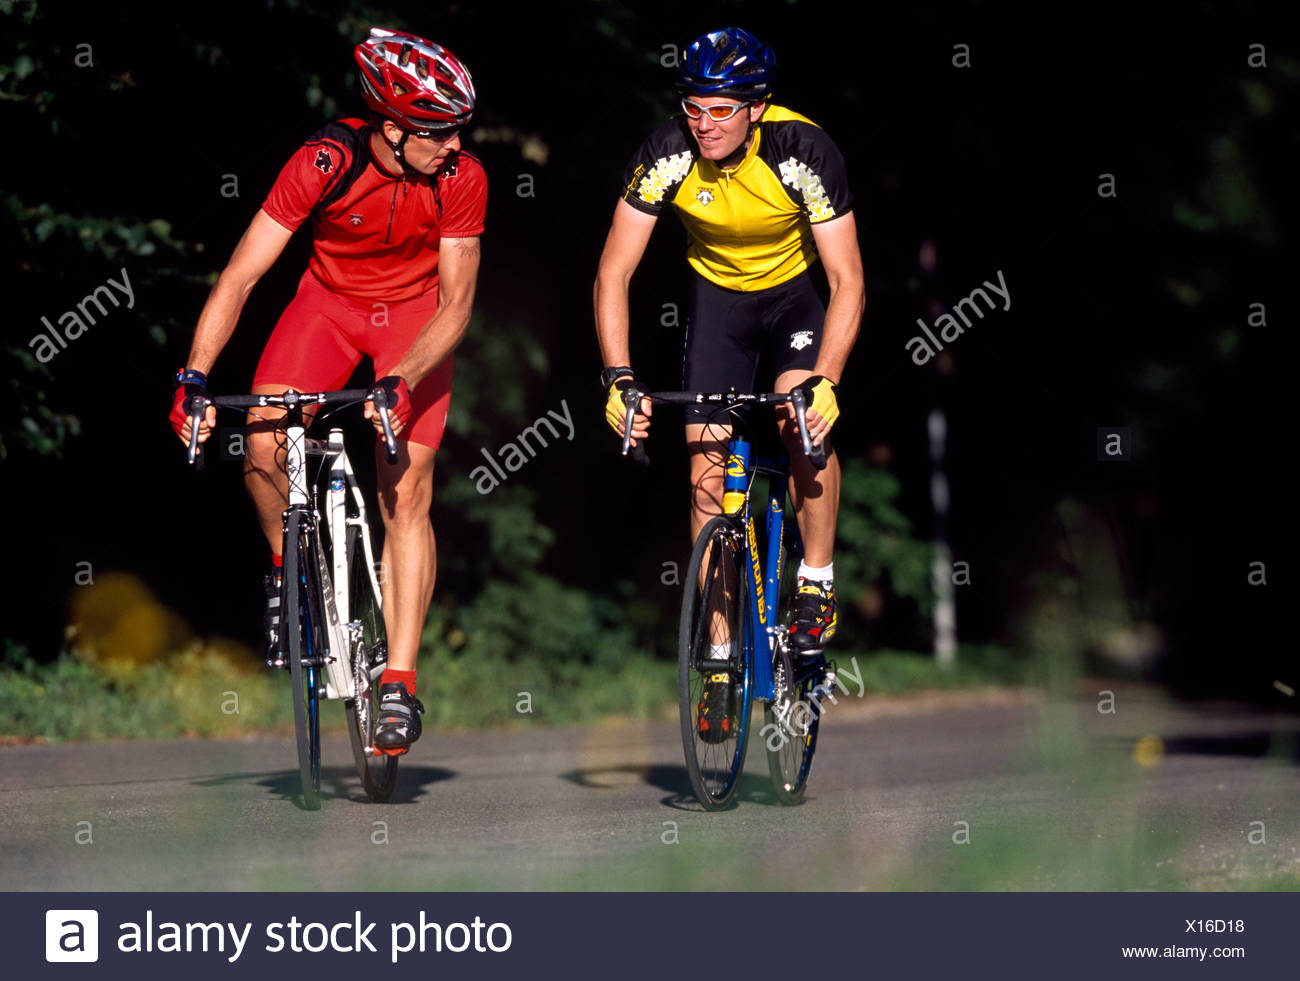 Racing cyclists, Lake Starnberg, Bavaria, Germany - Stock Image